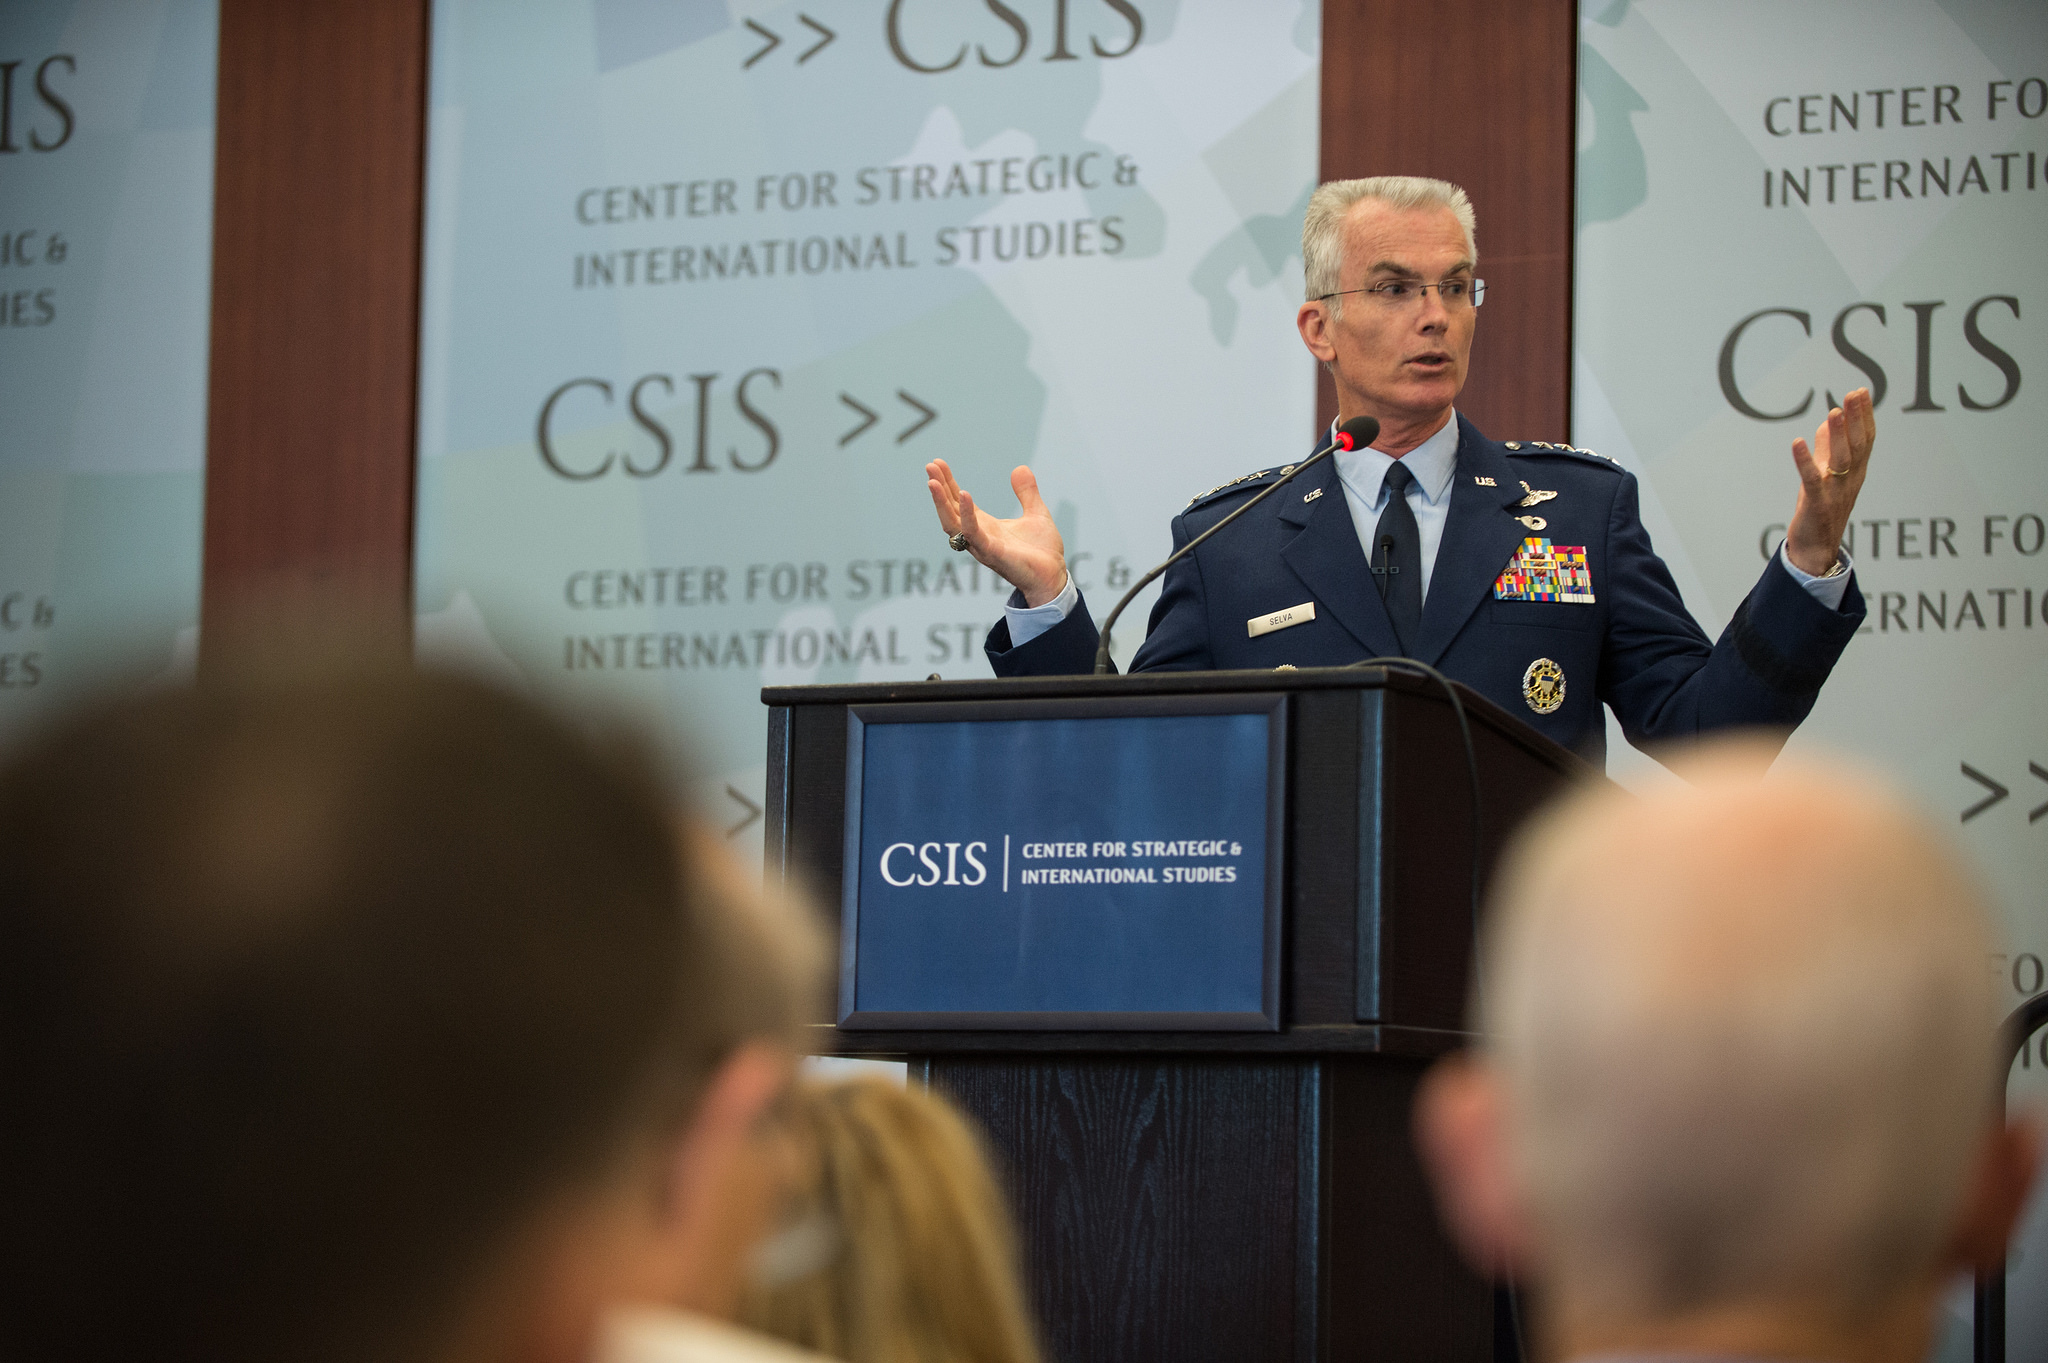 Gen. Frank Selva at CSIS on Thursday. DoD Photo